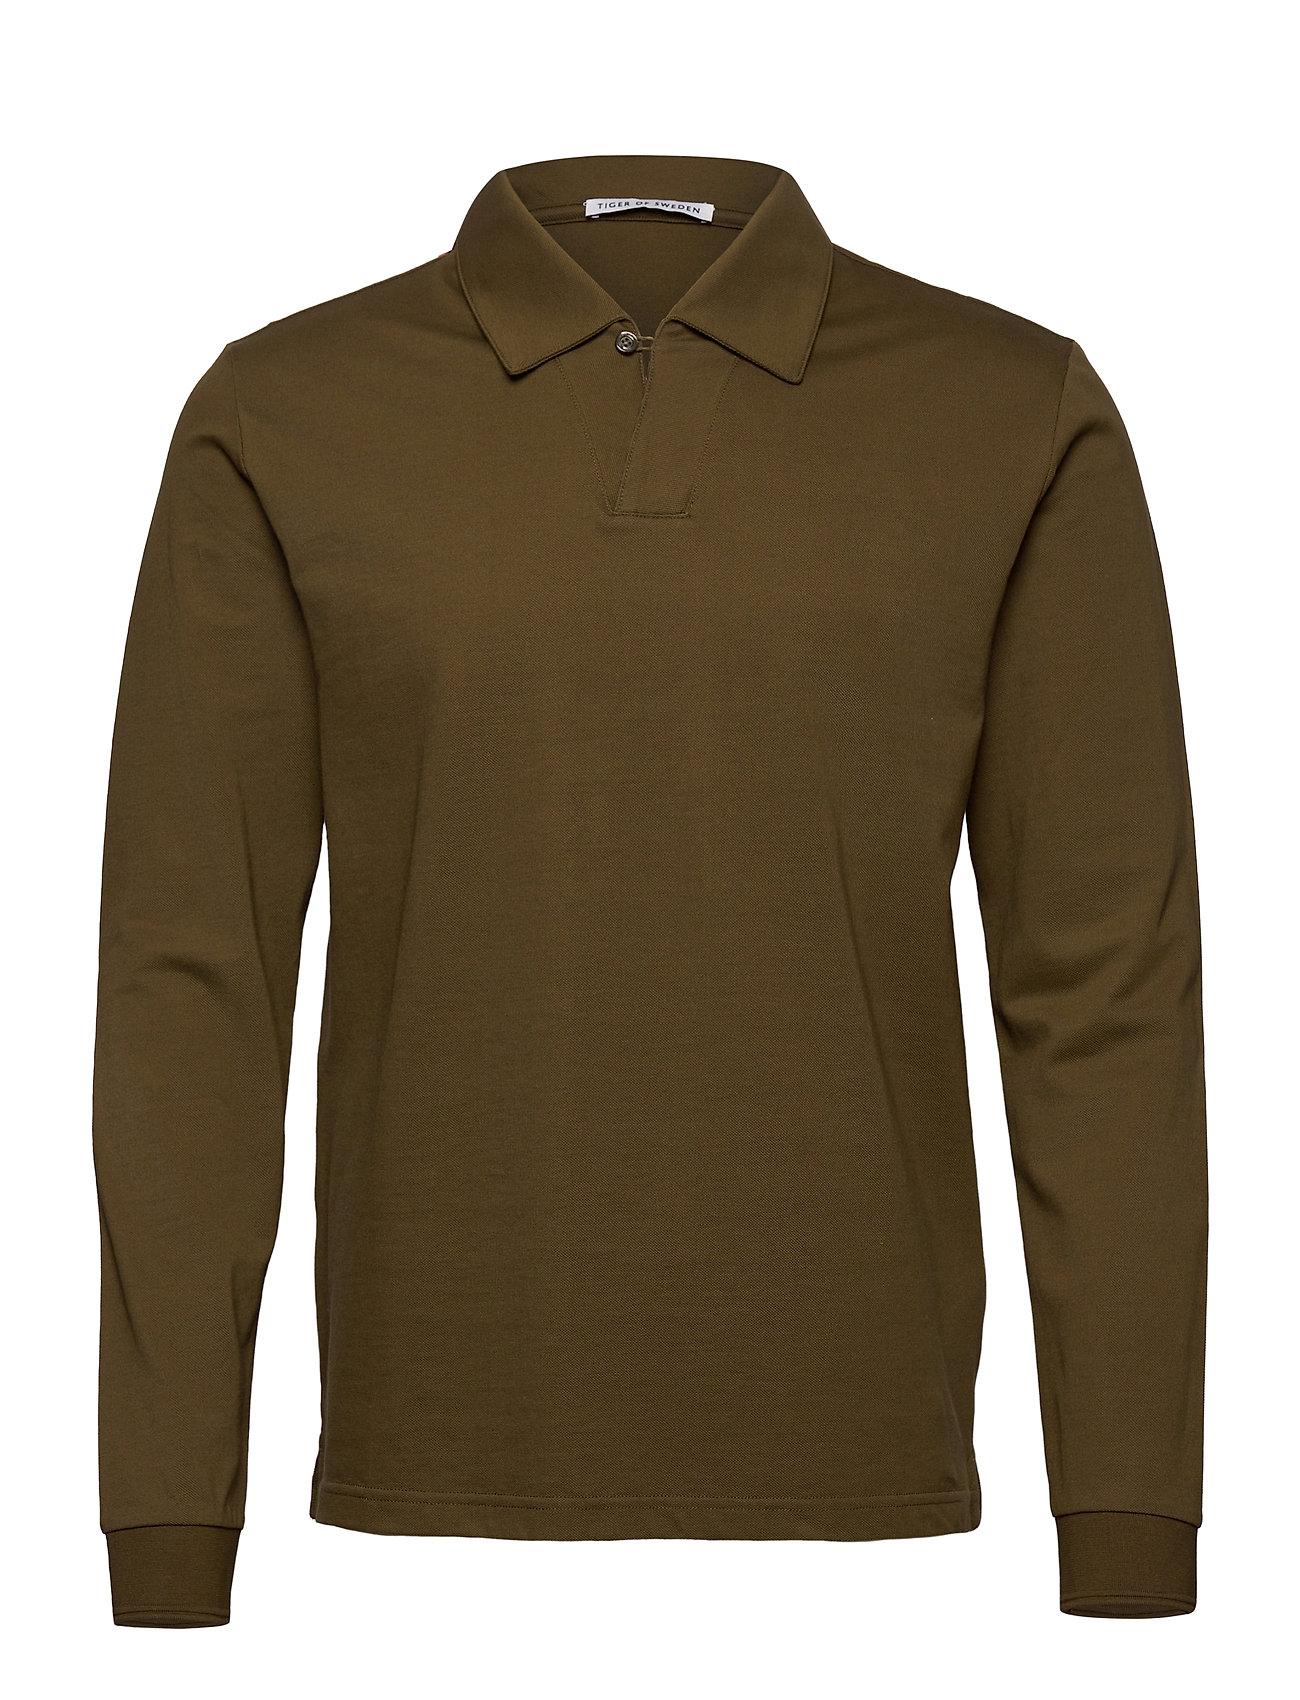 Image of Aderico Ls Polos Long-sleeved Grøn Tiger Of Sweden (3445309019)